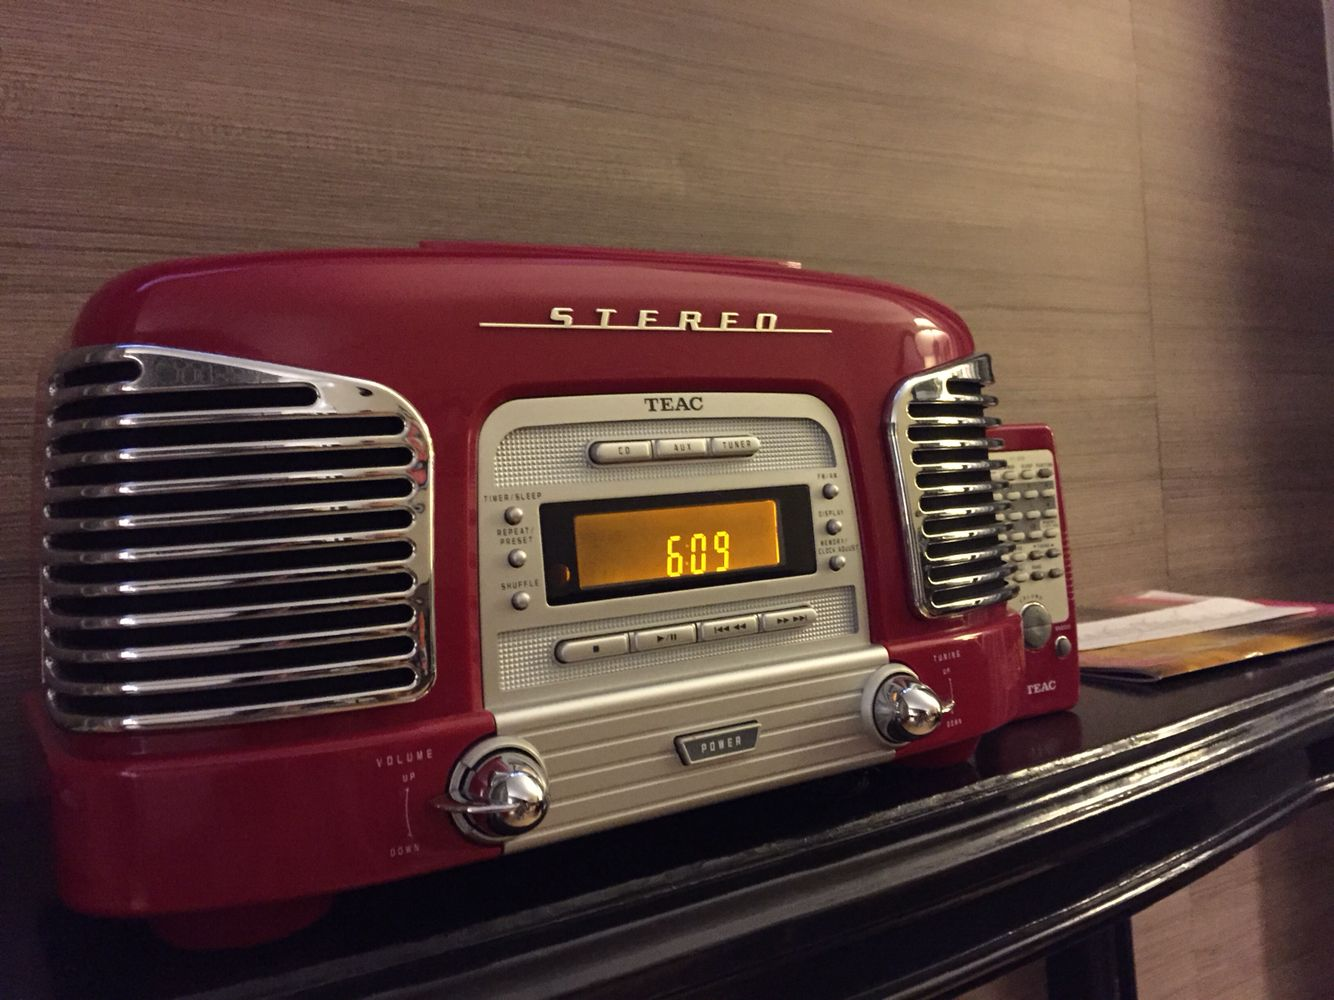 Stereo love by TEAC Home appliances, Home decor, Design